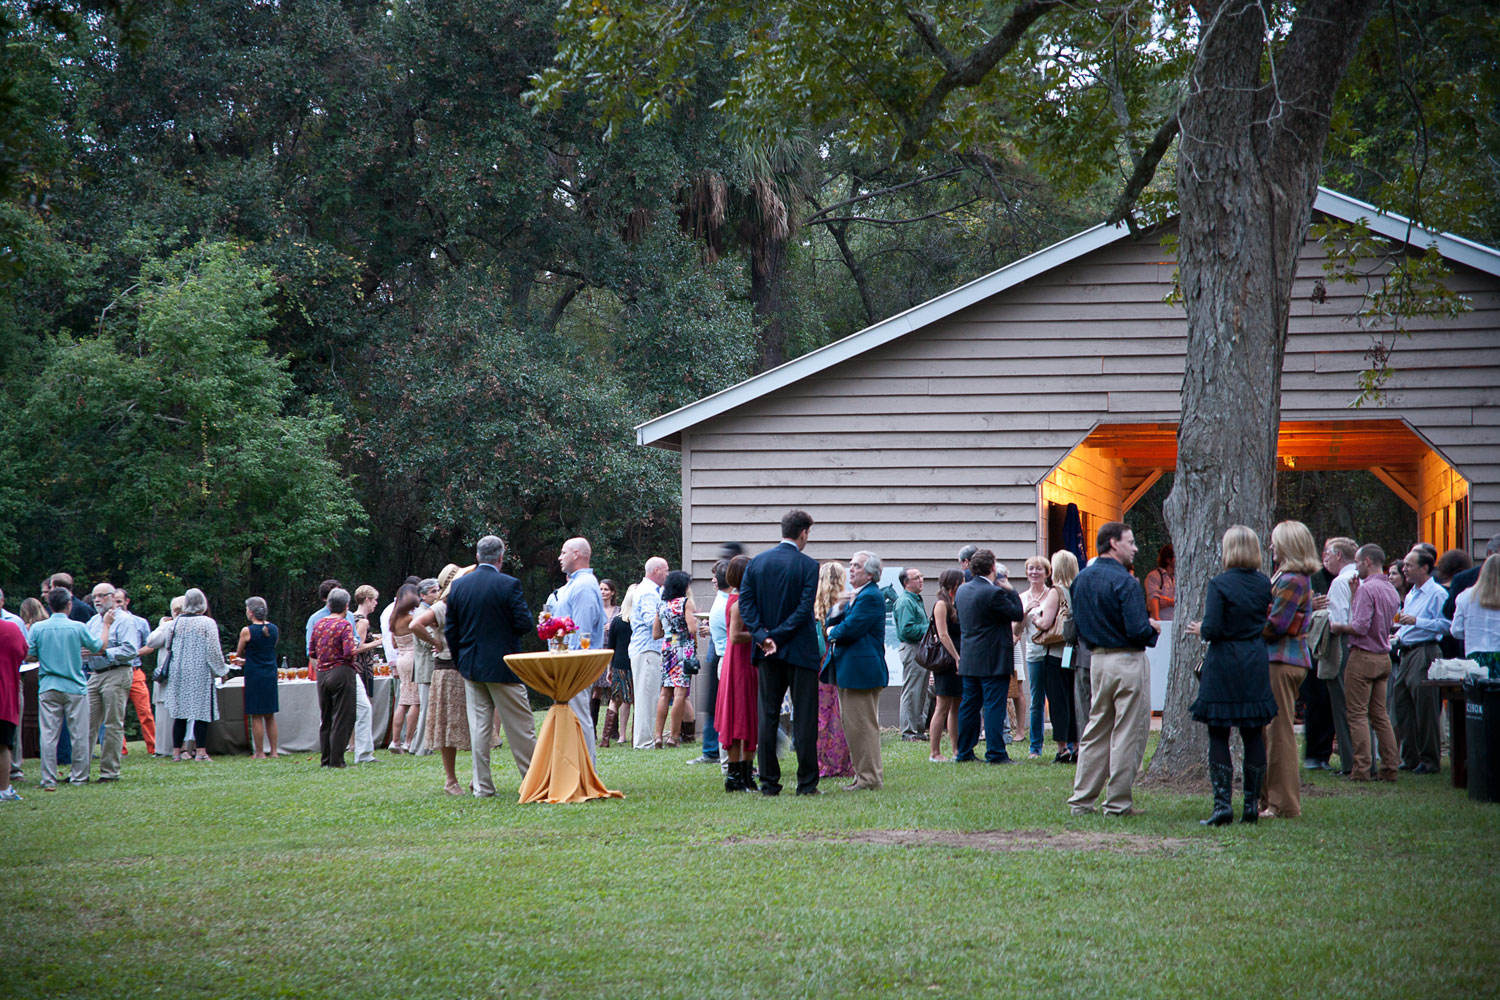 Located in the heart of West Ashley, Old Towne Creek County Park is ideal for weddings, corporate picnics, oyster roasts, or any occasion where a convenient and secluded location is needed. The property features large open meadows, marsh views, gorgeous b